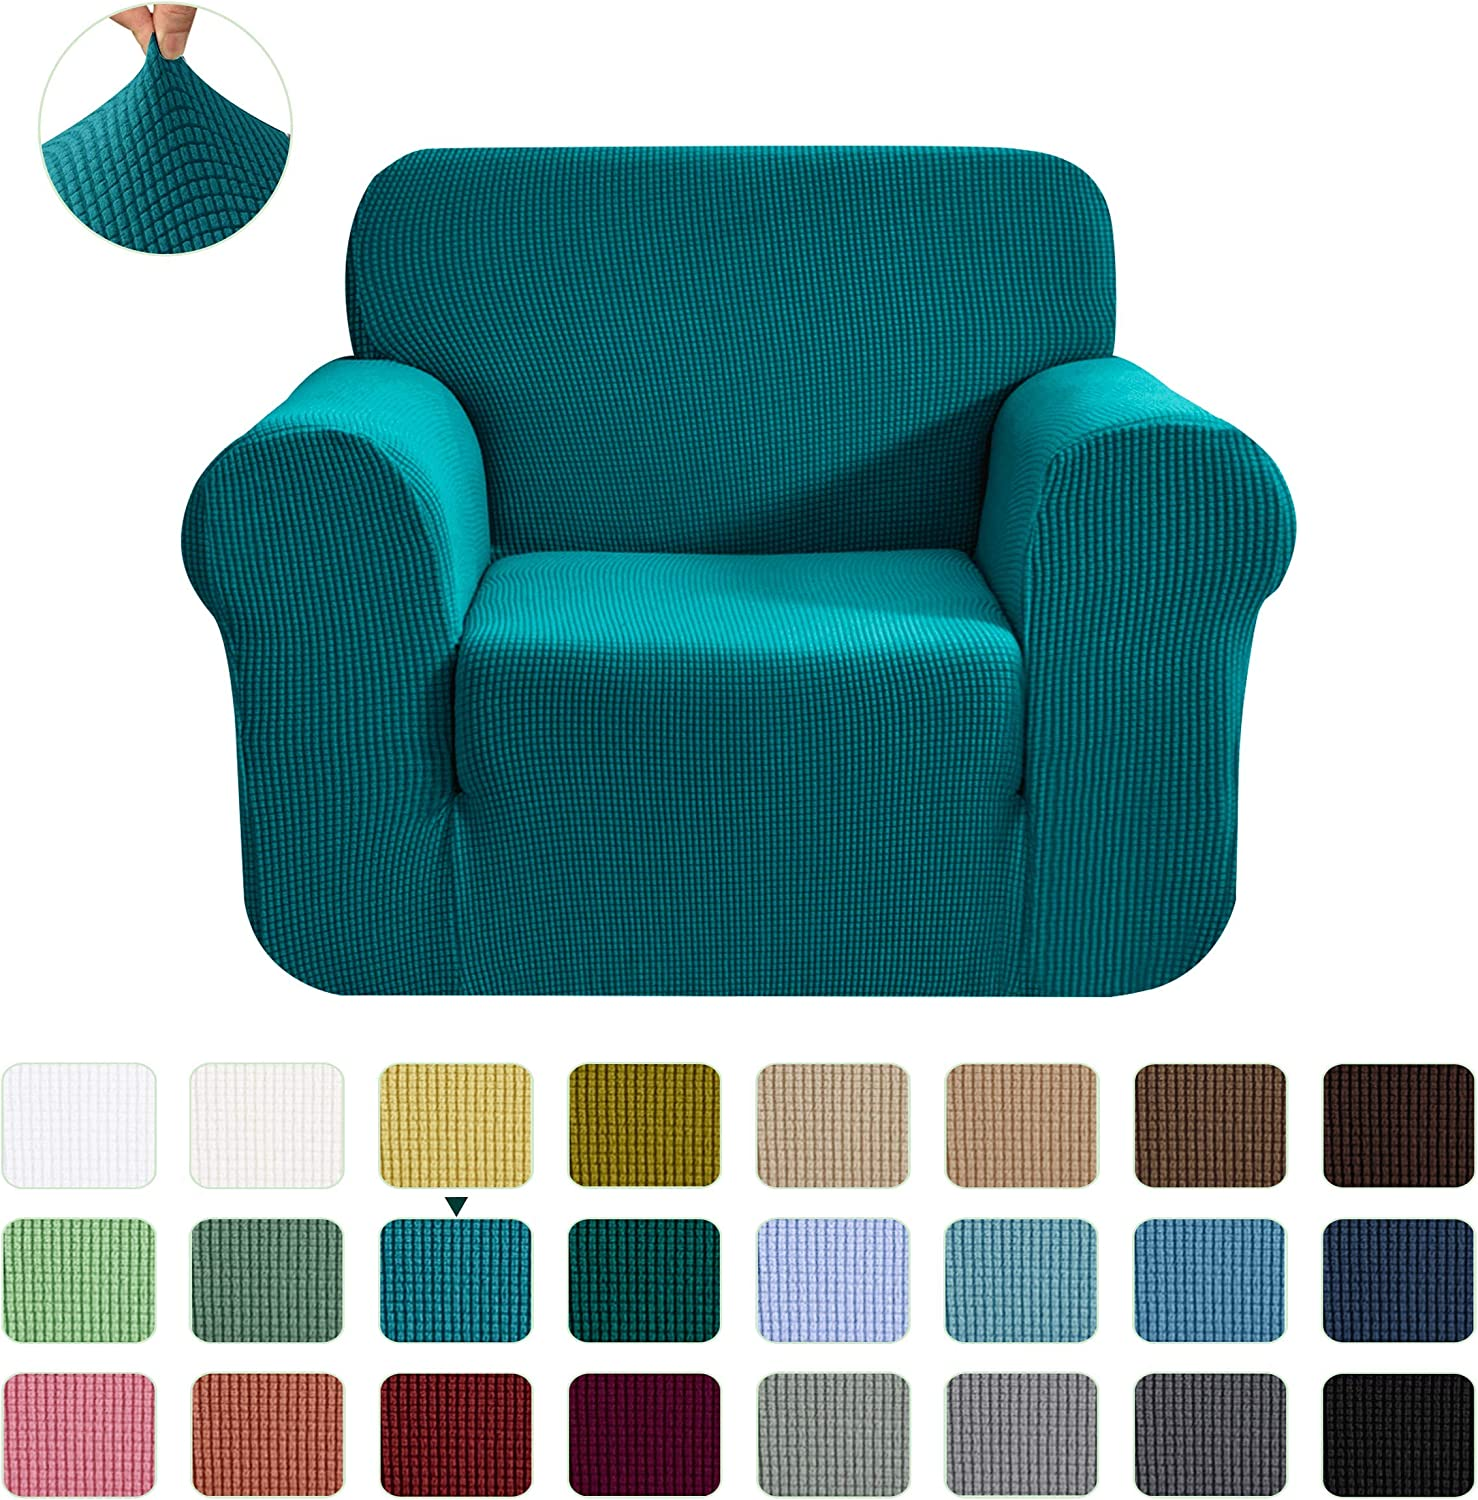 CHUN YI Stretch Chair Sofa Slipcover 1-Piece Couch Cover Furniture Protector,1 Seater Settee Coat Soft with Elastic Bottom,Checks Spandex Jacquard Fabric, Small, Teal